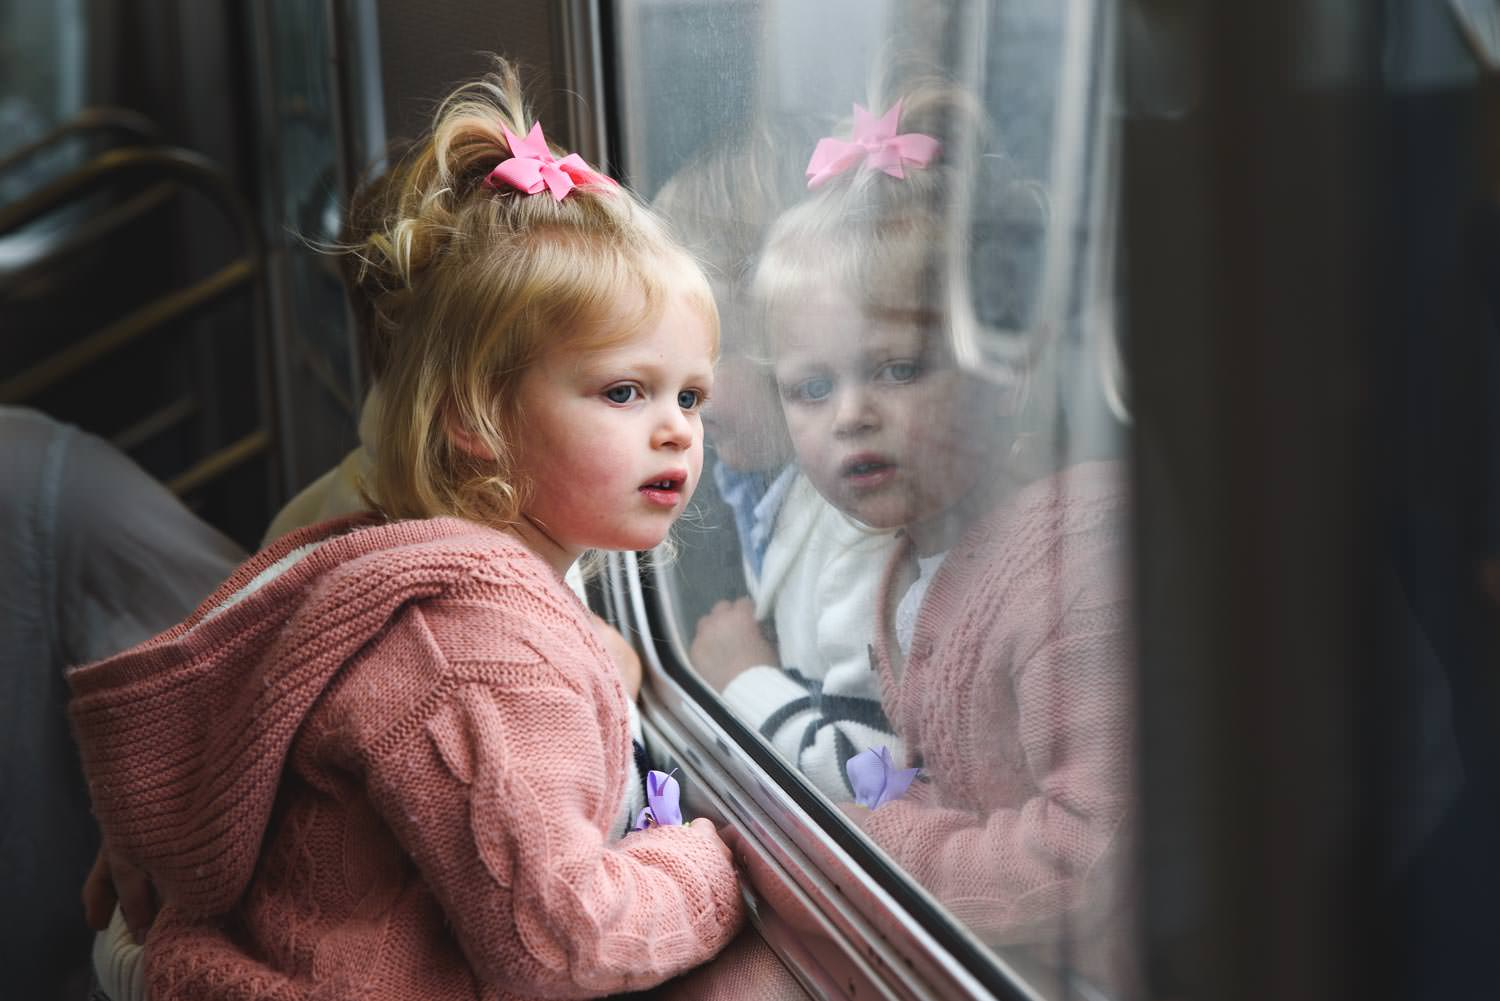 A little girl looks out the window on the subway.